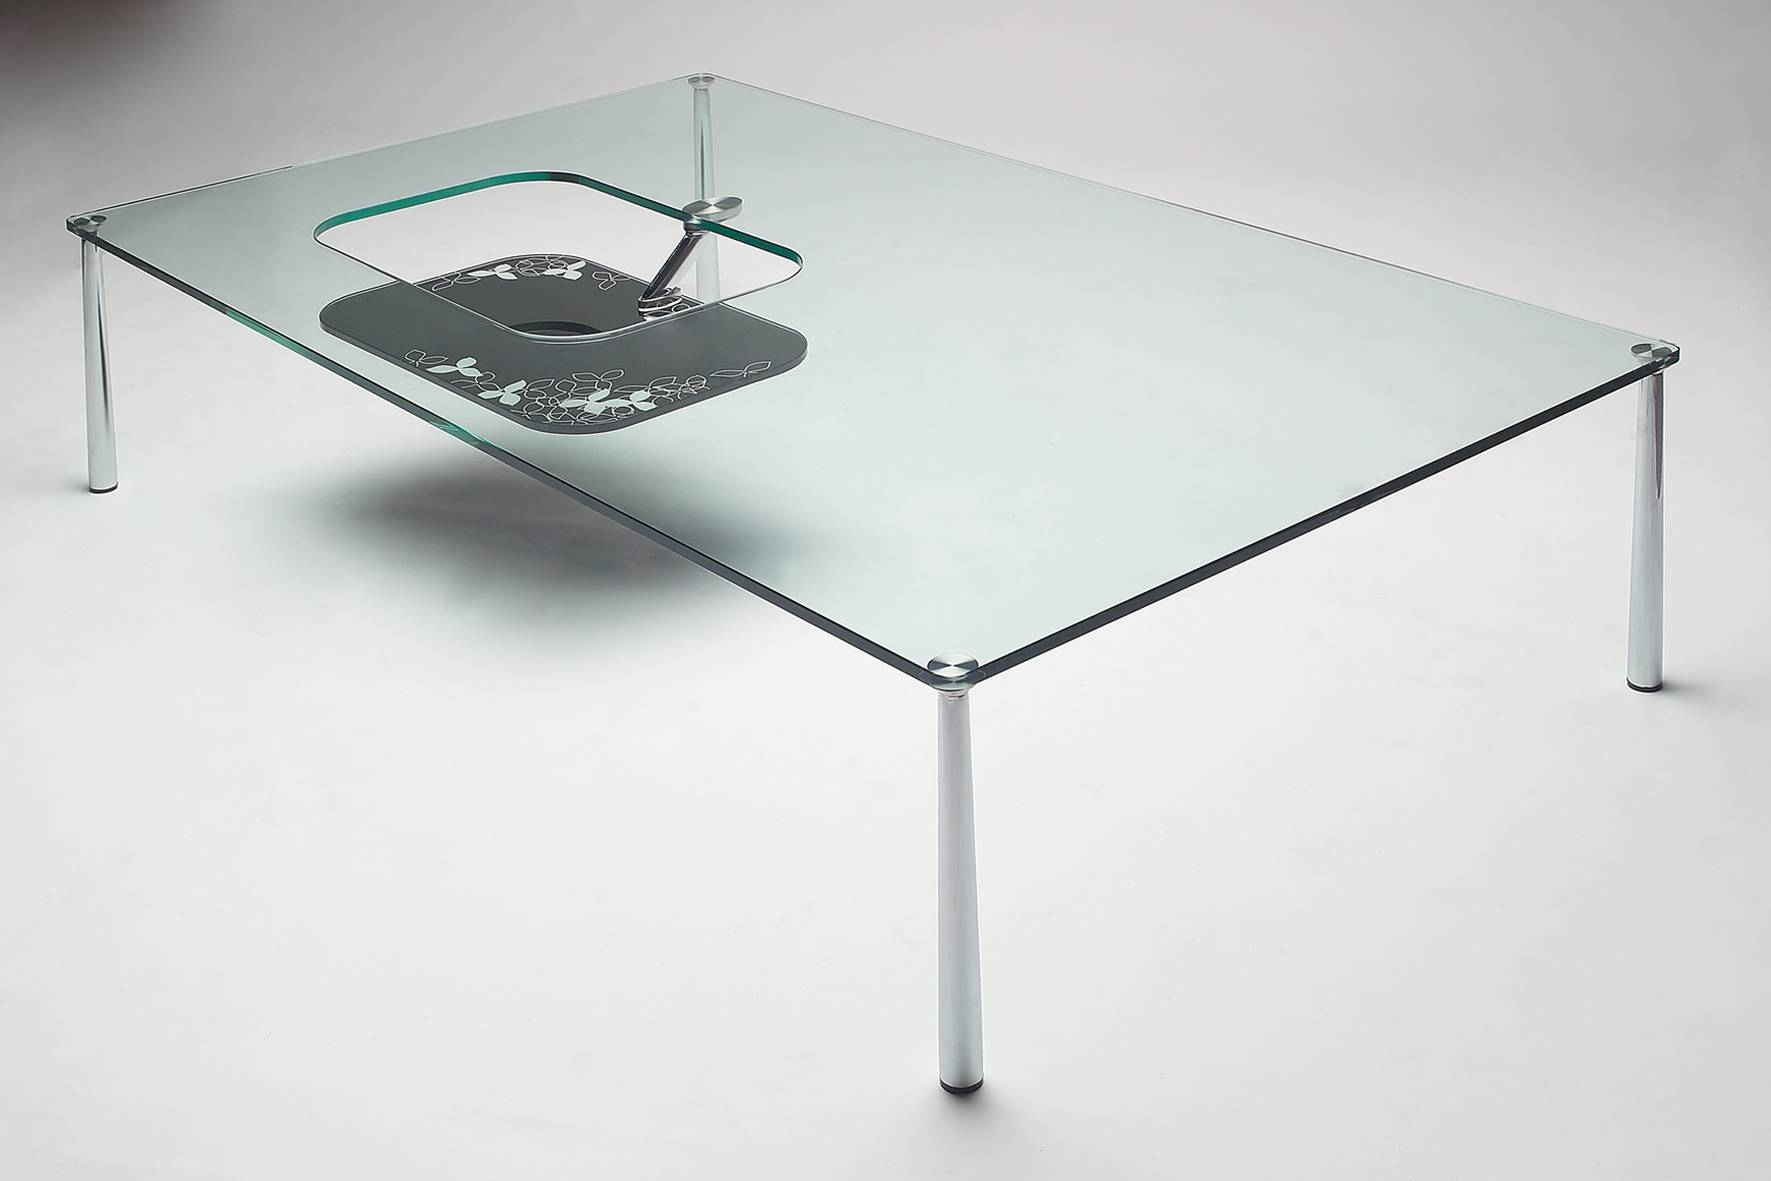 Unique Glass Coffee Tables - Capitangeneral regarding Unique Glass Coffee Tables (Image 14 of 15)